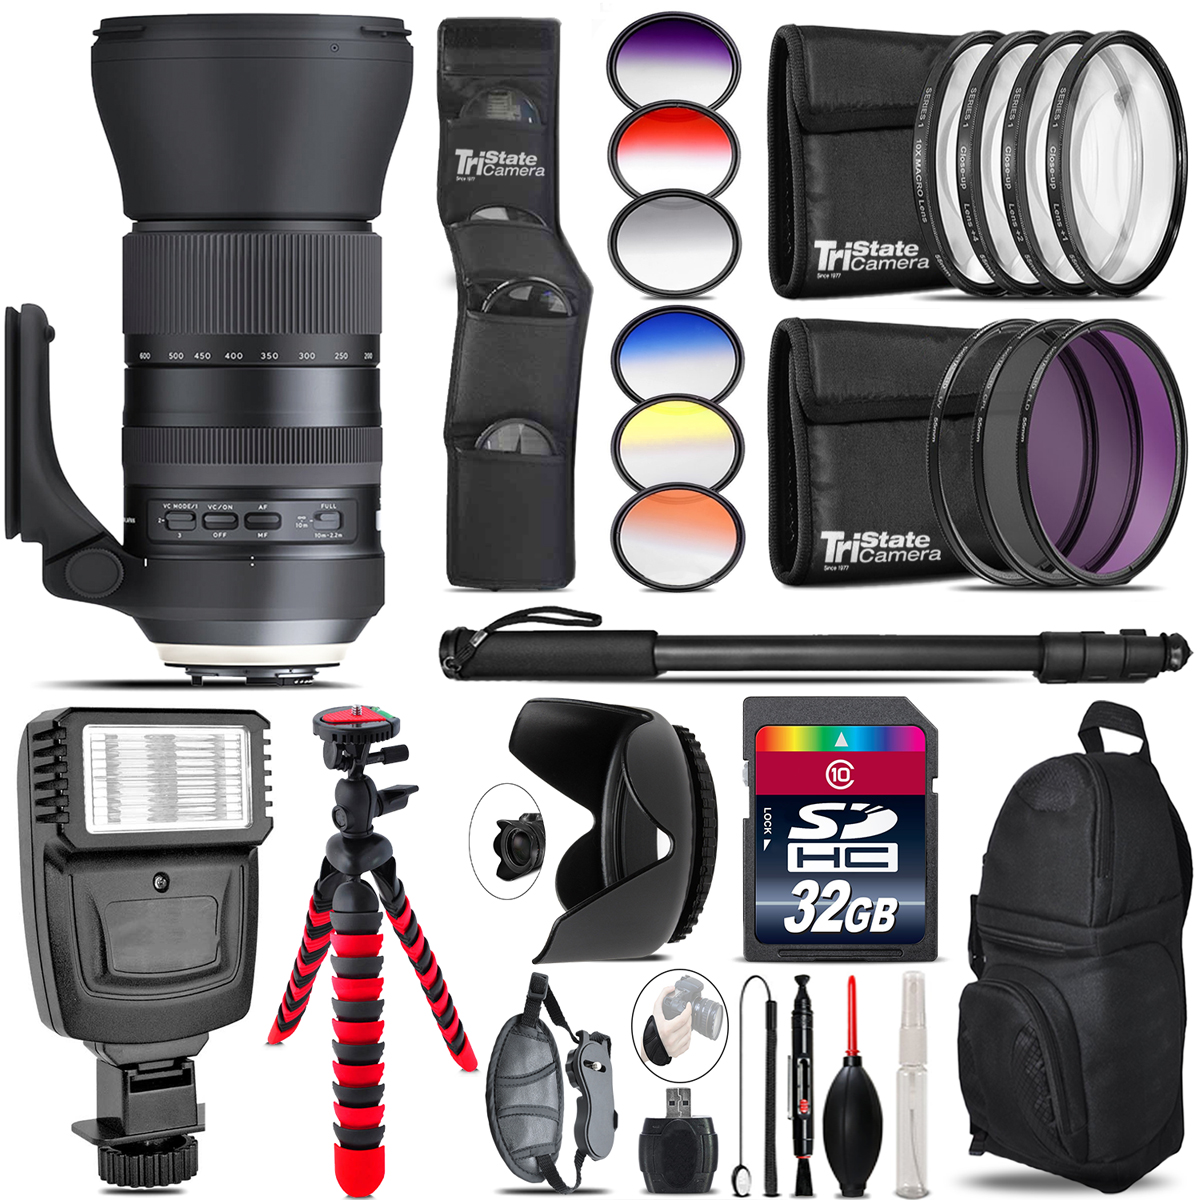 Tamron 150-600mm G2 for Canon + Flash + Color Filter Set - 32GB Accessory Kit *FREE SHIPPING*